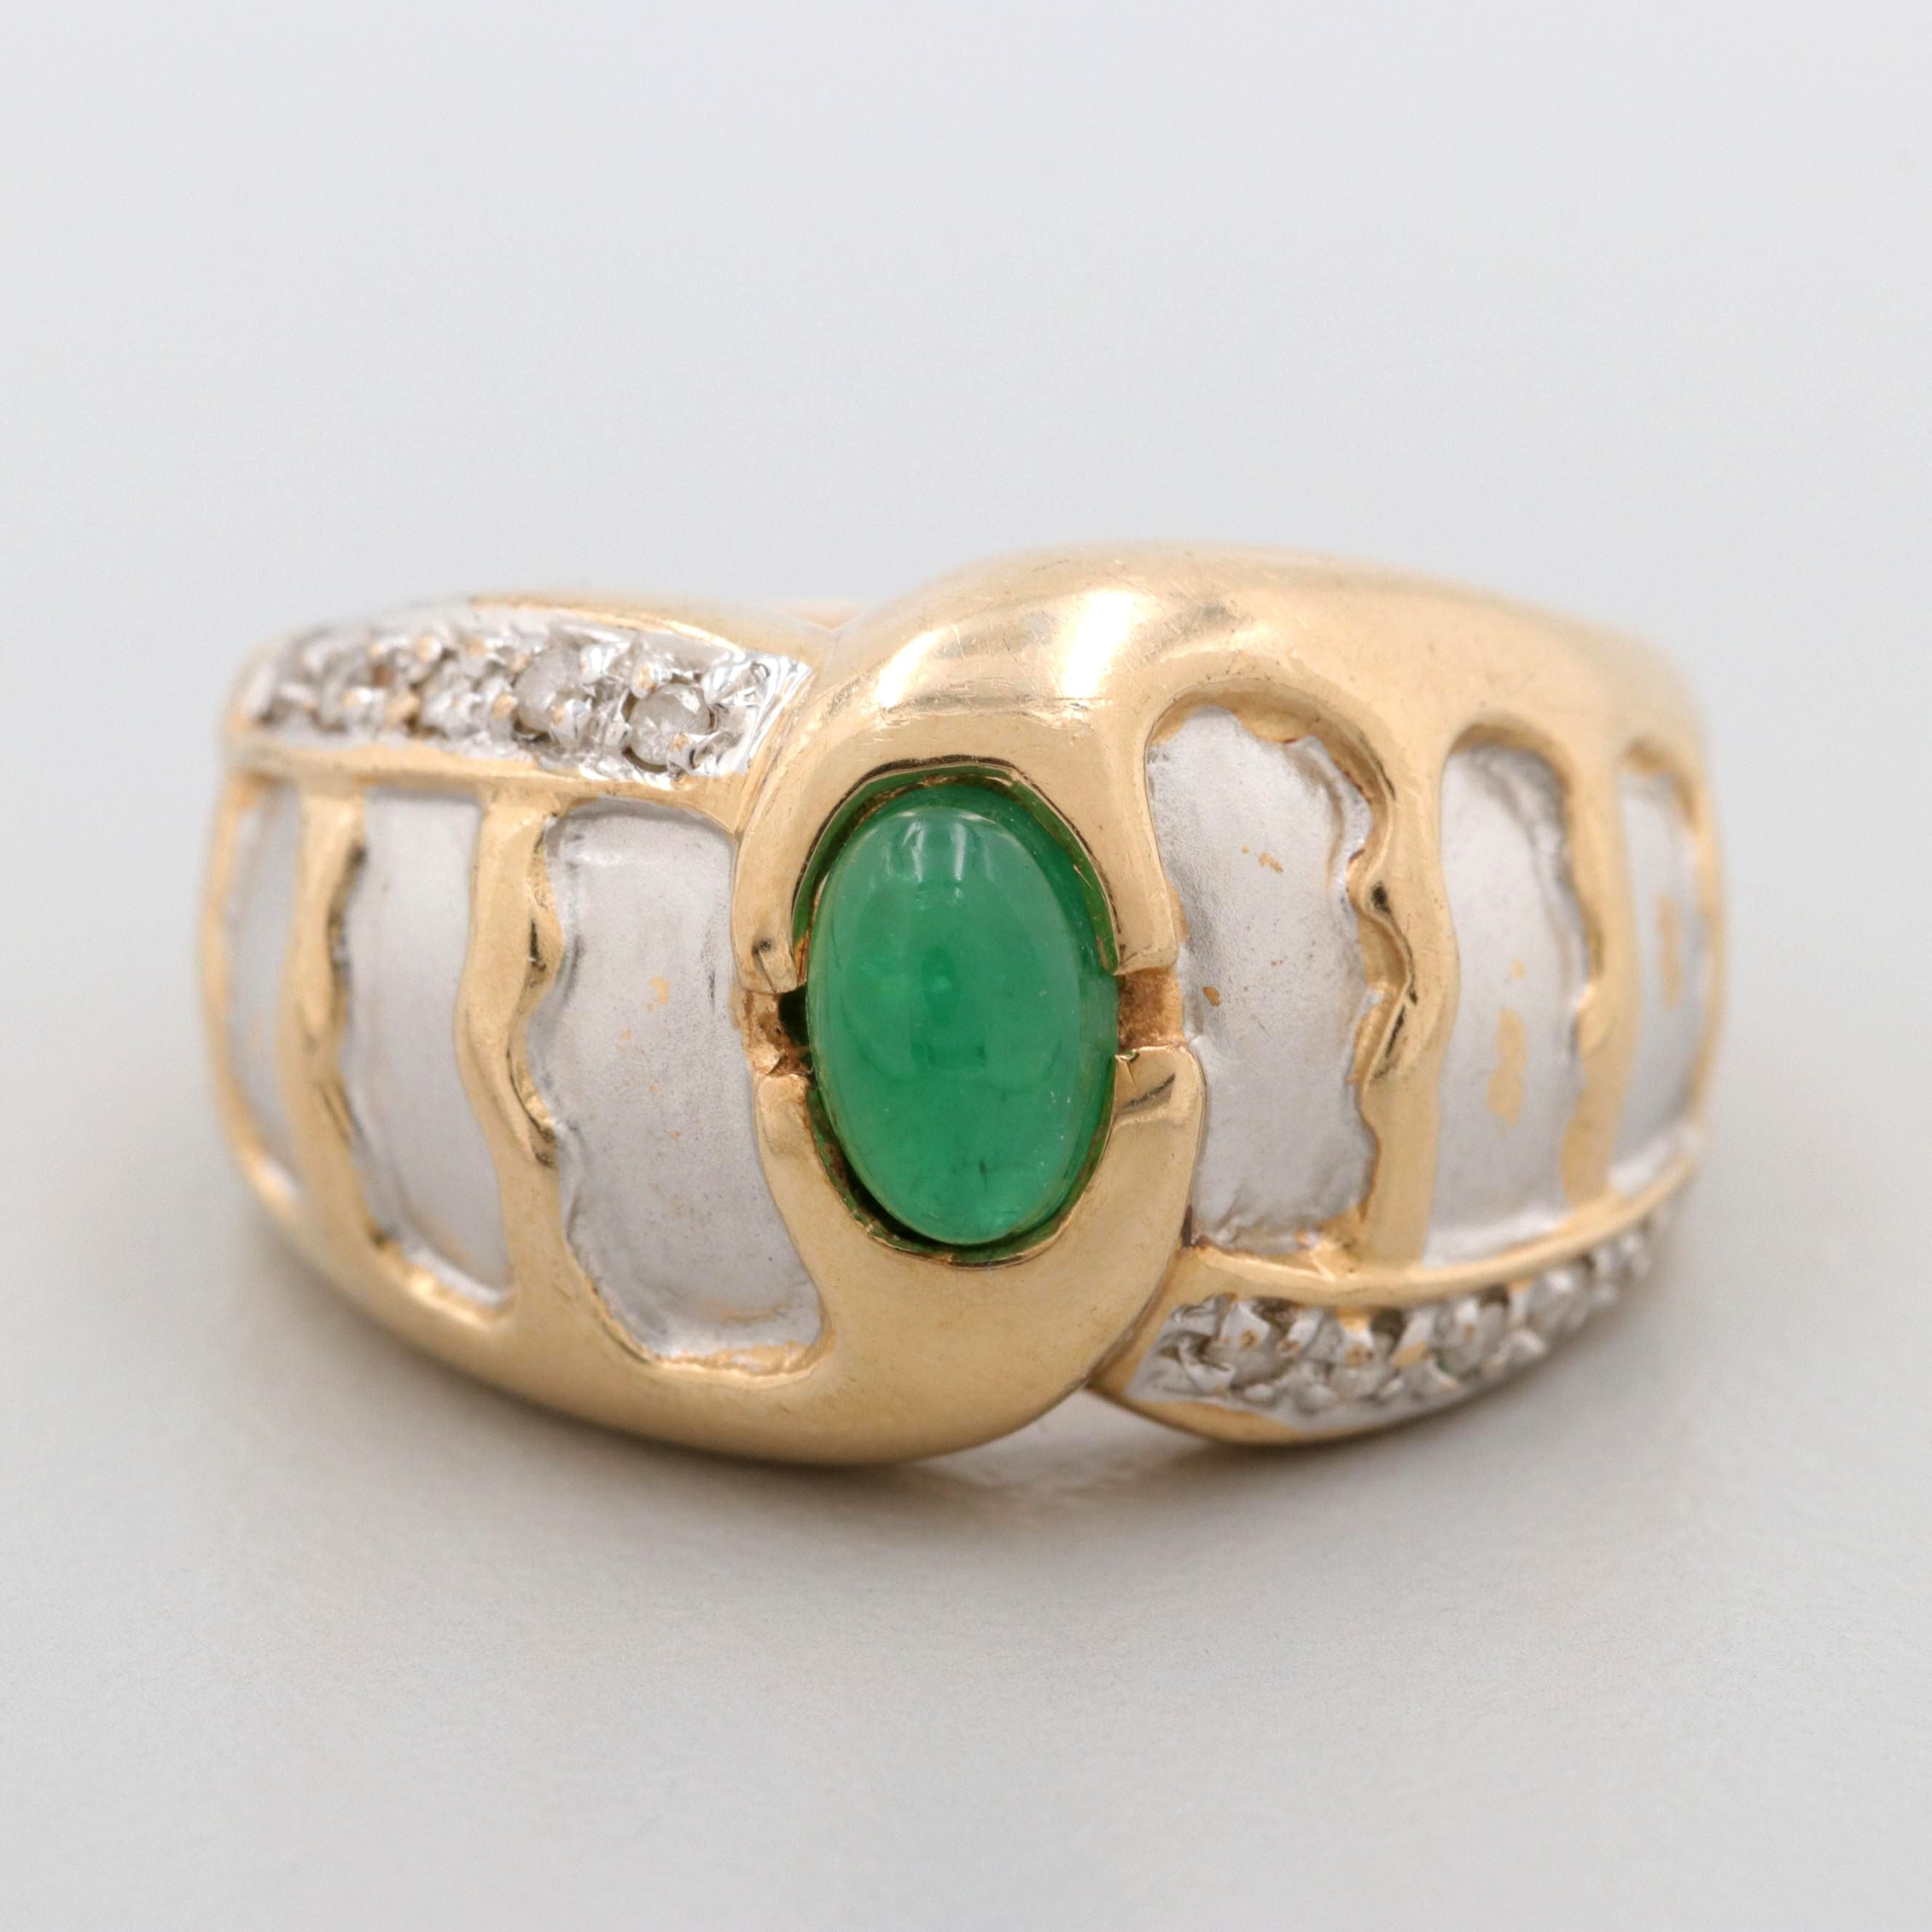 14K Yellow Gold Emerald and Diamond Ring with White Gold Accents